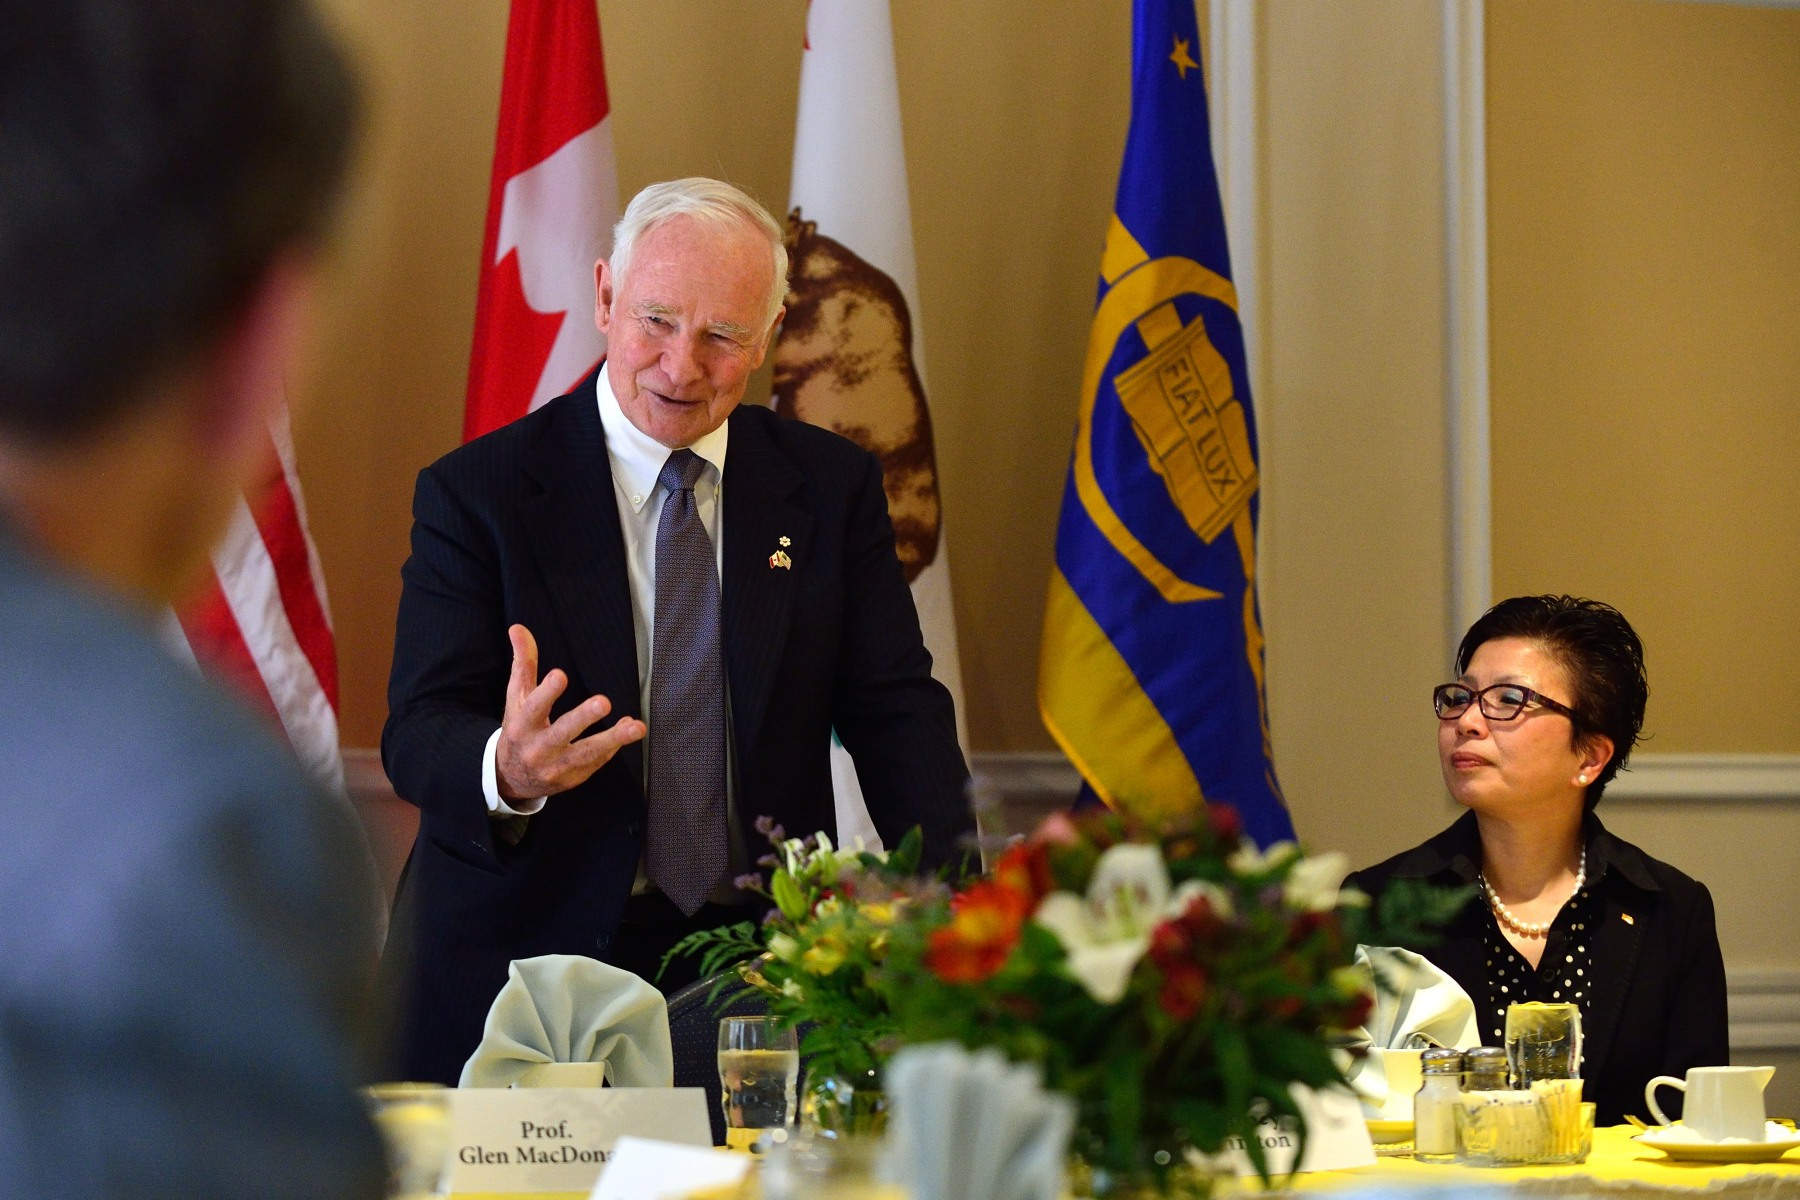 The Governor General delivered an address on the theme of Canada-United States: Training the Next Generation of Researchers and Innovators with officials and faculty from the UCLA Canadian Studies Program, the International Institute, the Burkle Center for International Relations, and the California Nanotechnology Institute.